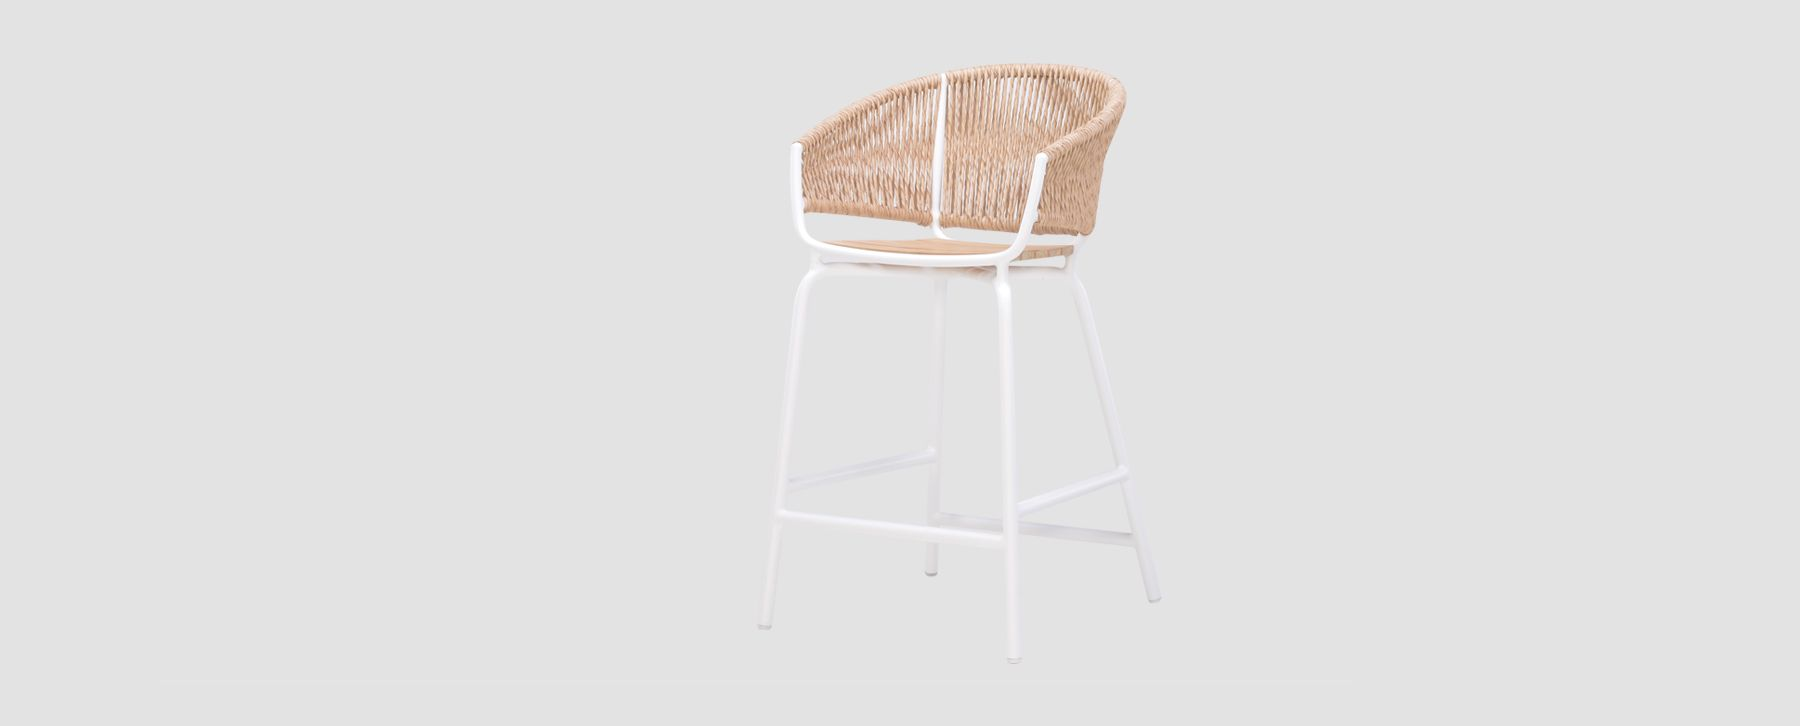 Ake Weave Barstool Rope Luxury Restaurants Cord Outdoor Furniture Teak Seat Hotels Contract Hospitality Modern Garden